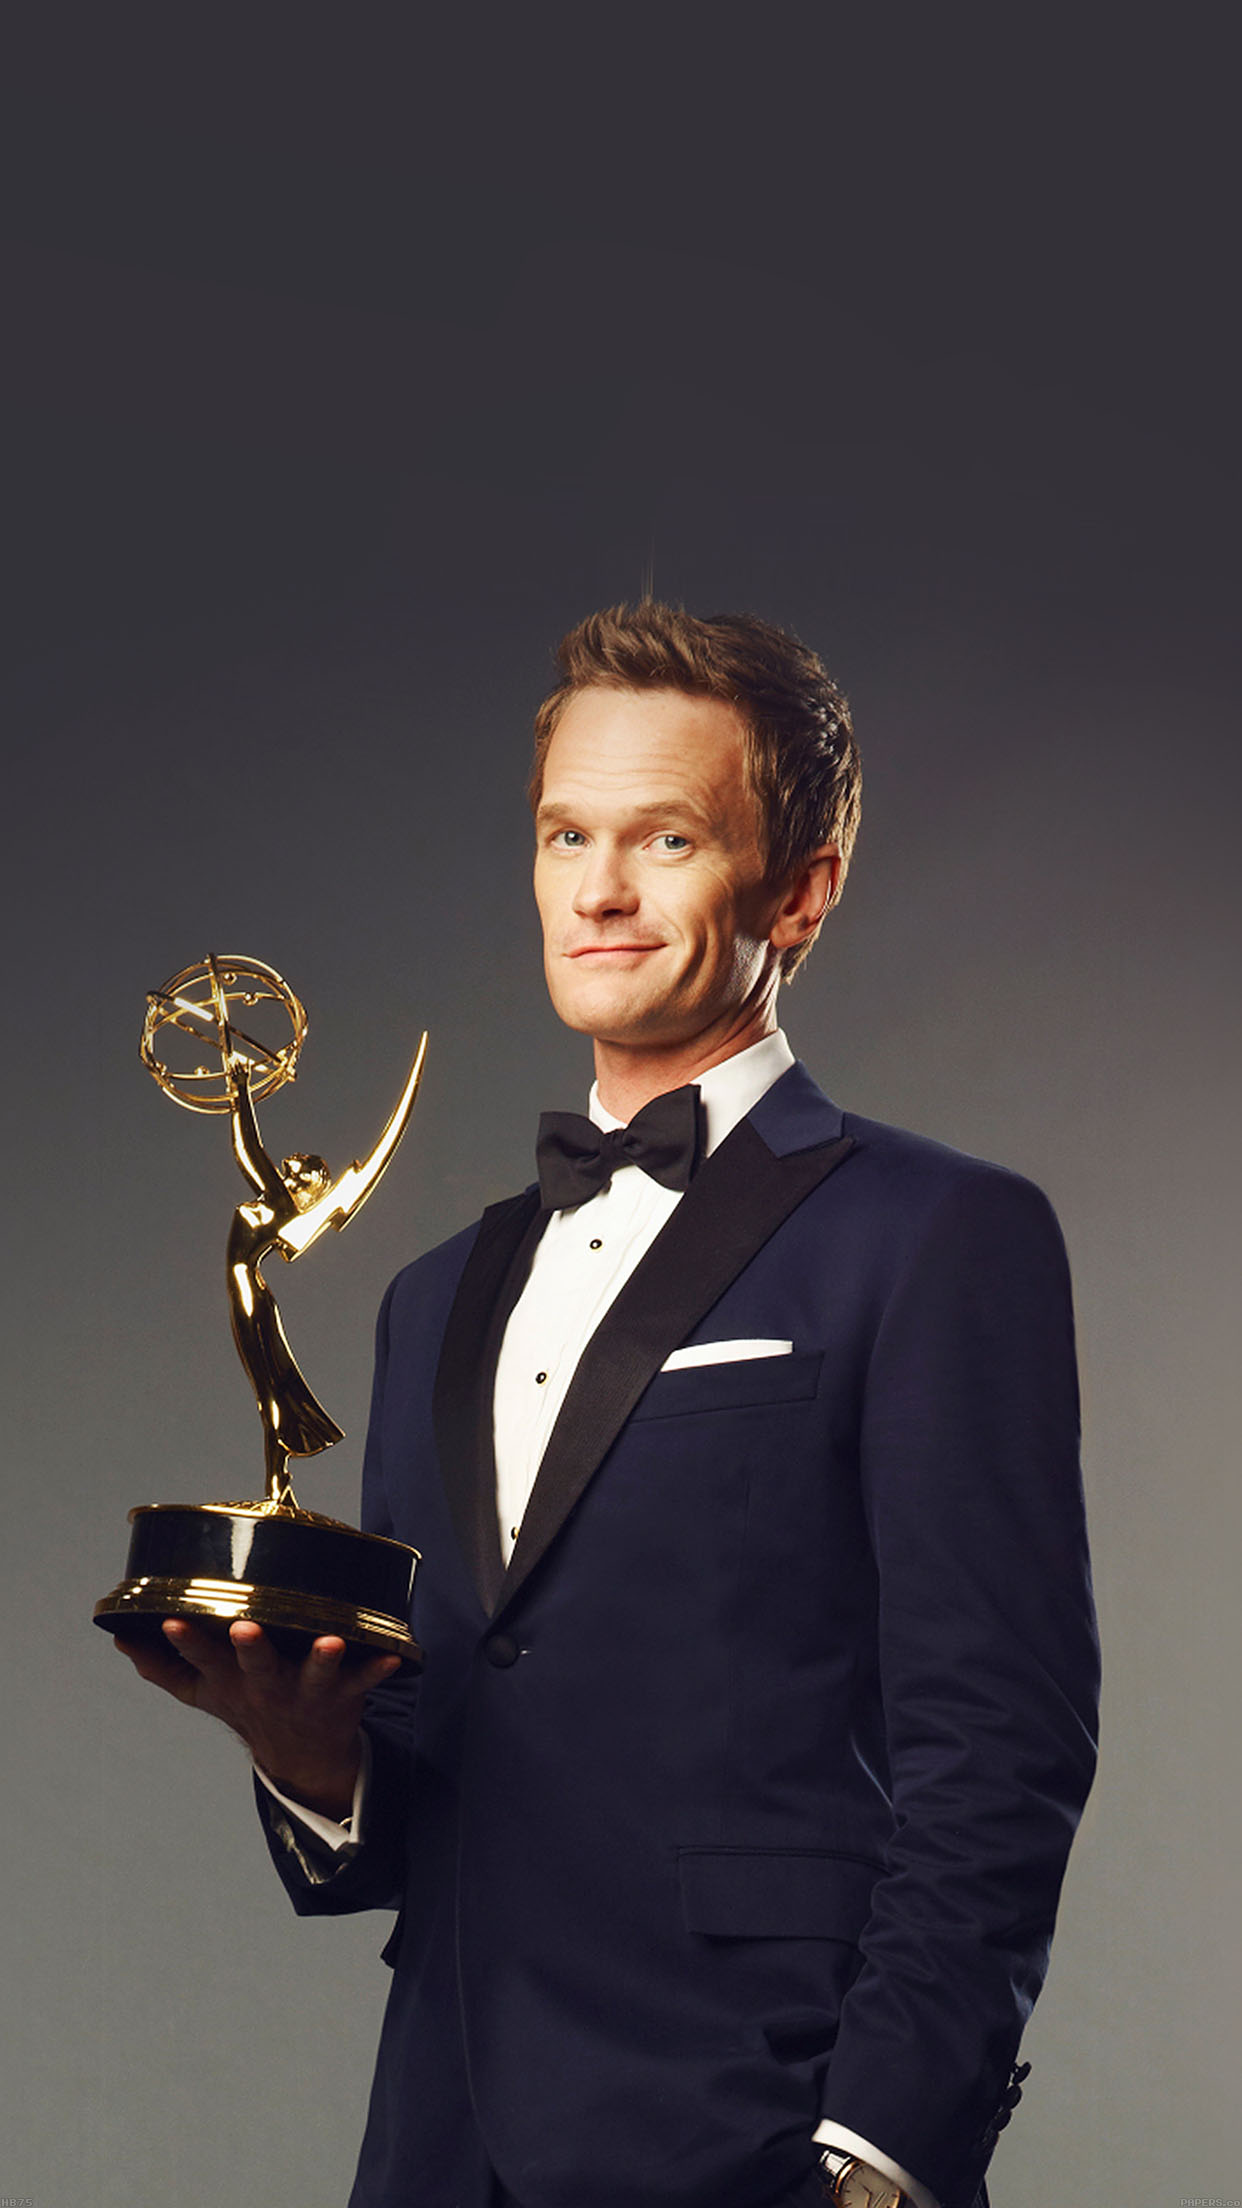 Neil Patrick Harris Actor Android wallpaper